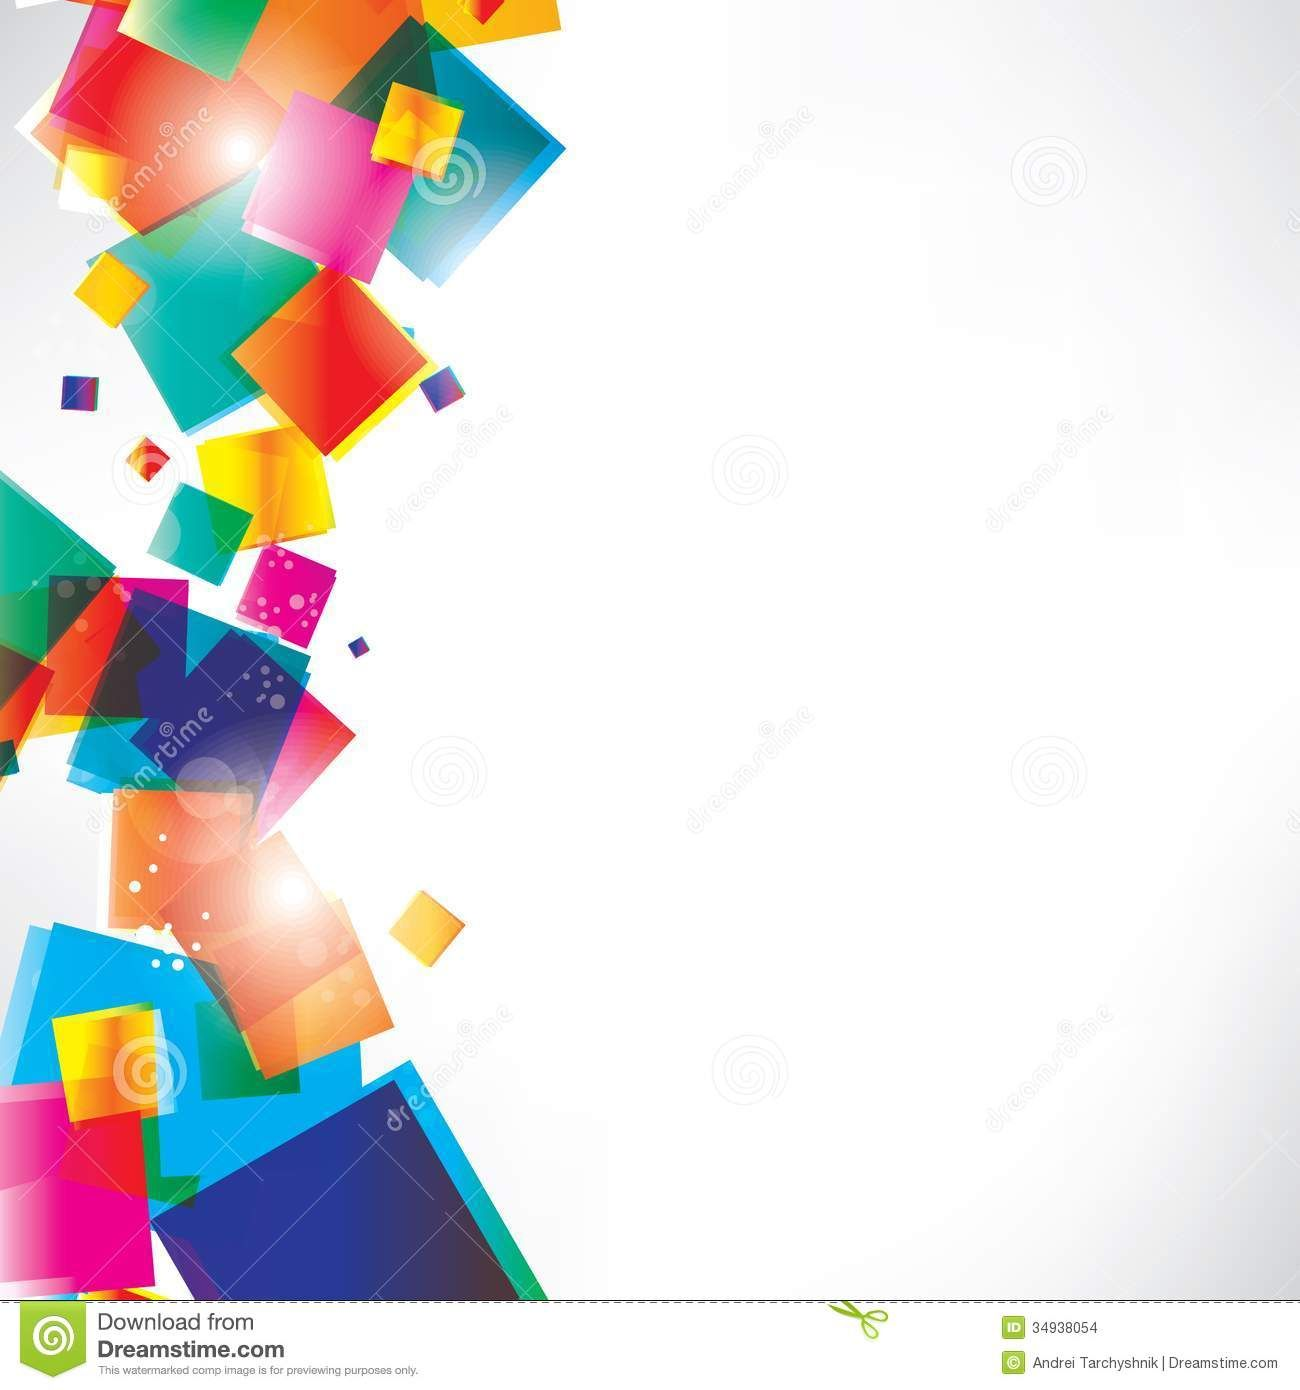 backgrounds of geometric shapes - Google Search | Personal ...